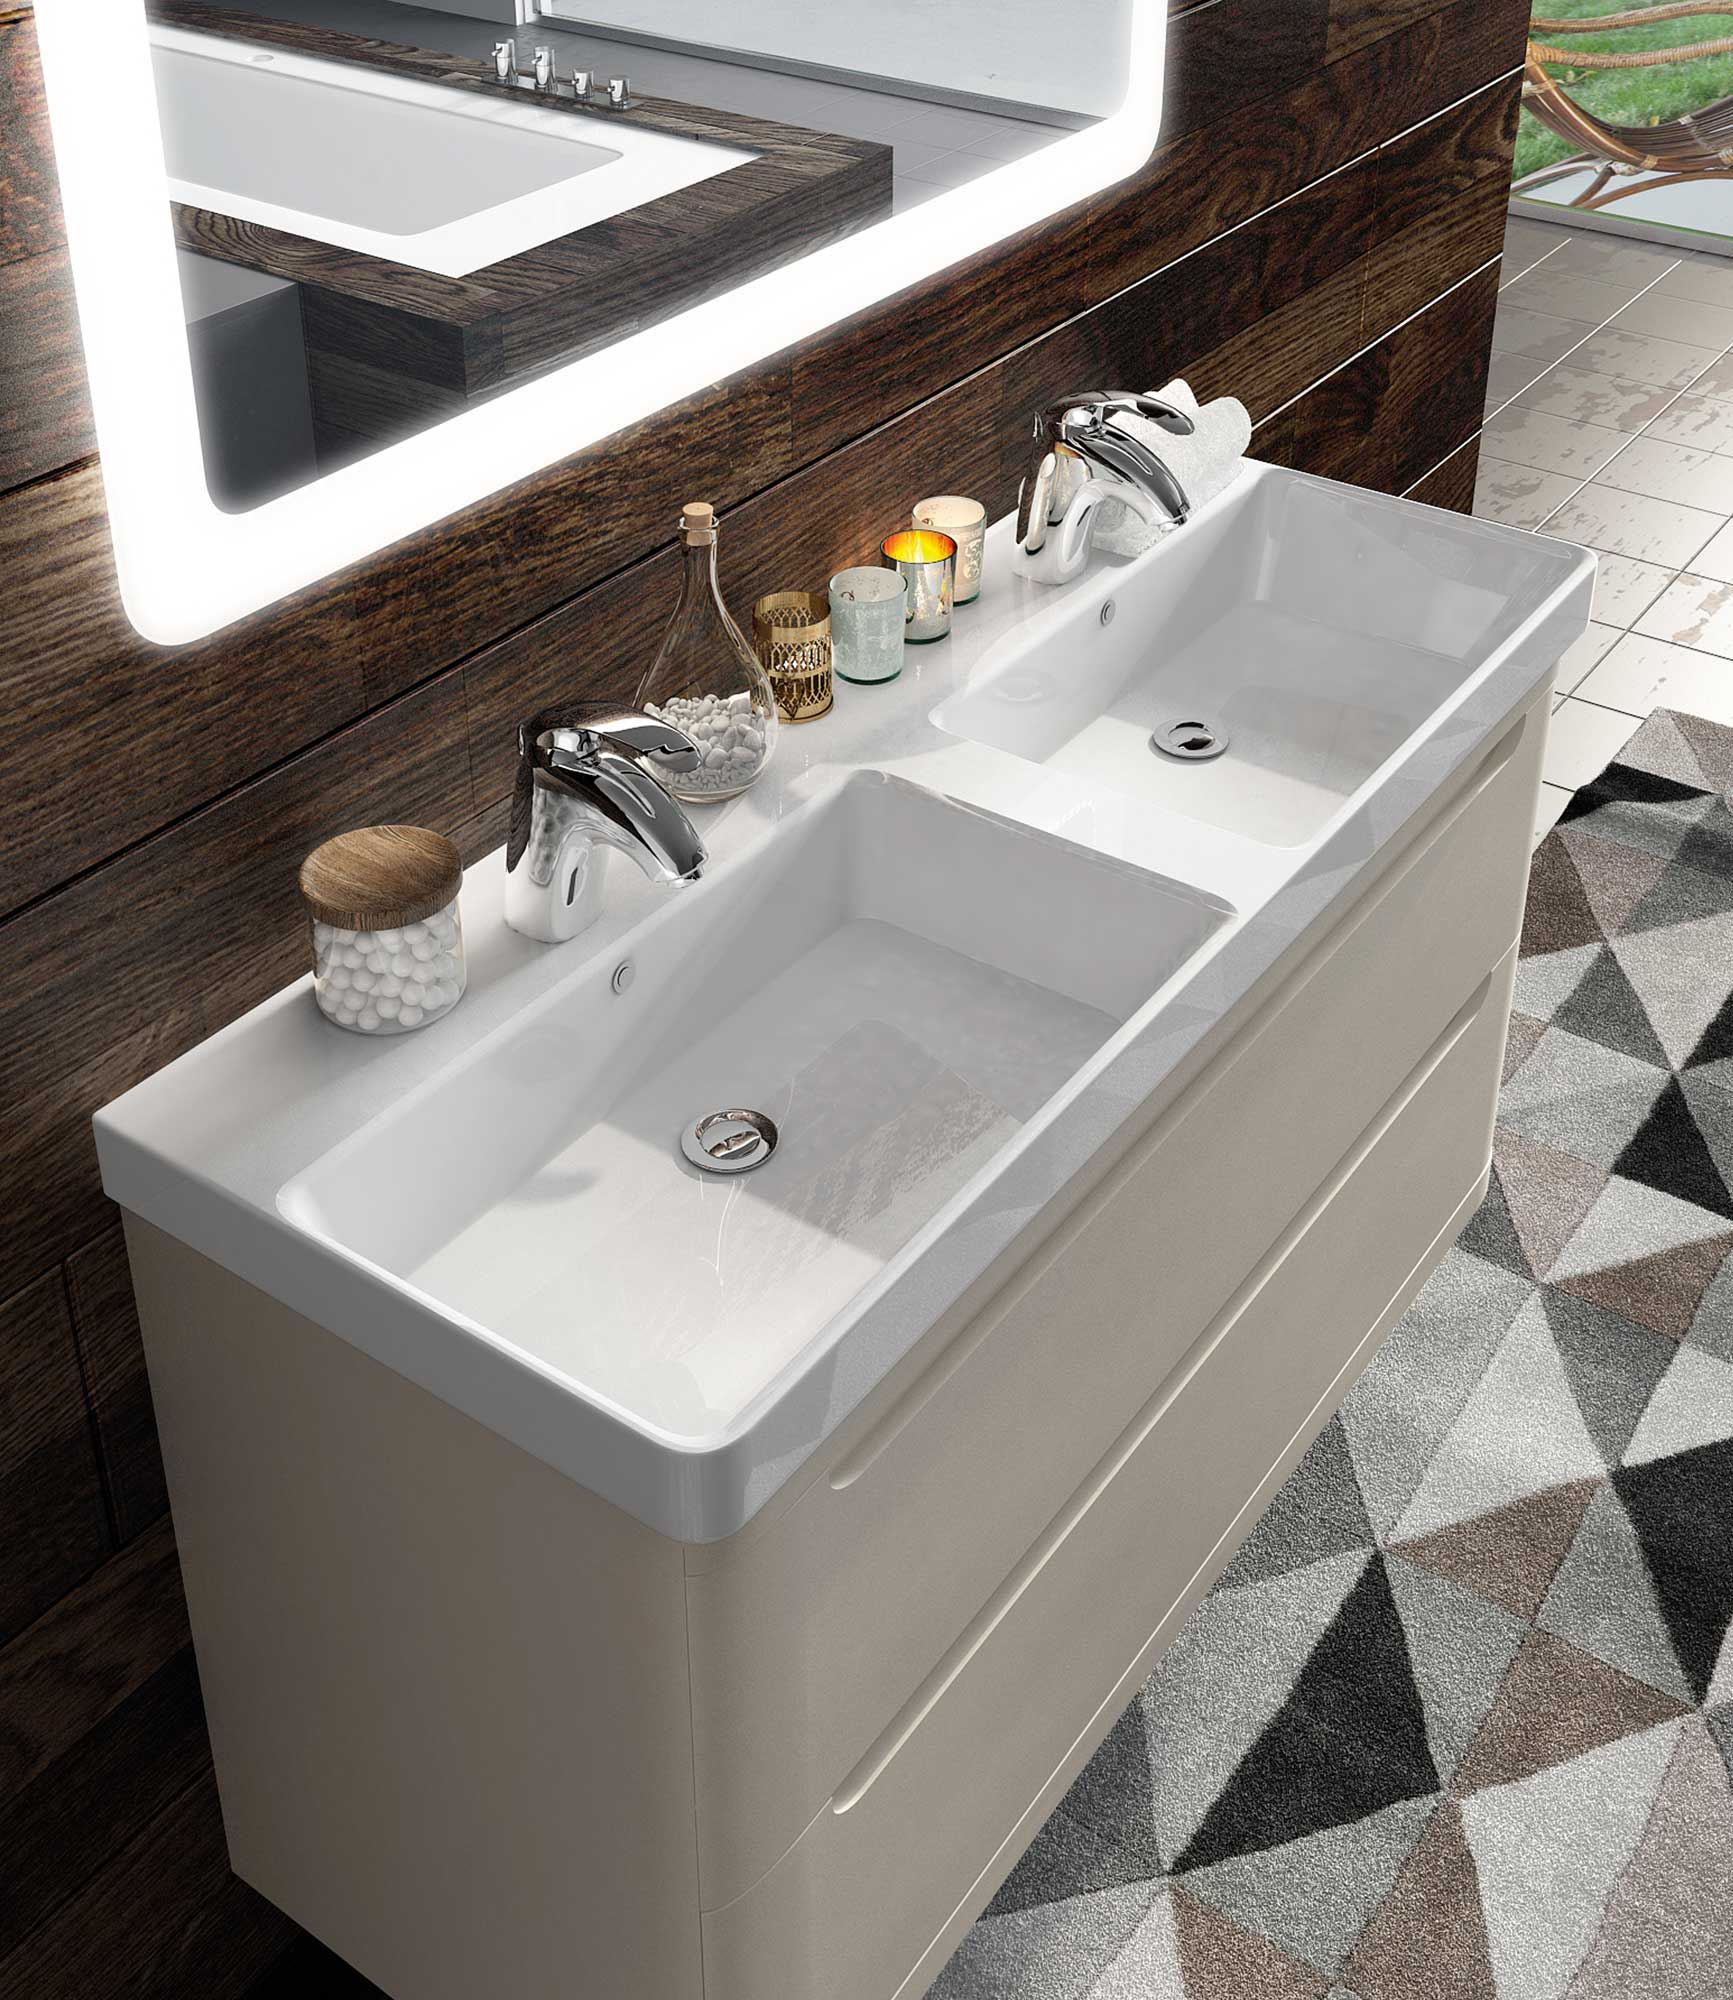 Mueble ba o loop lavabo doble seno avila dos for Lavabo doble